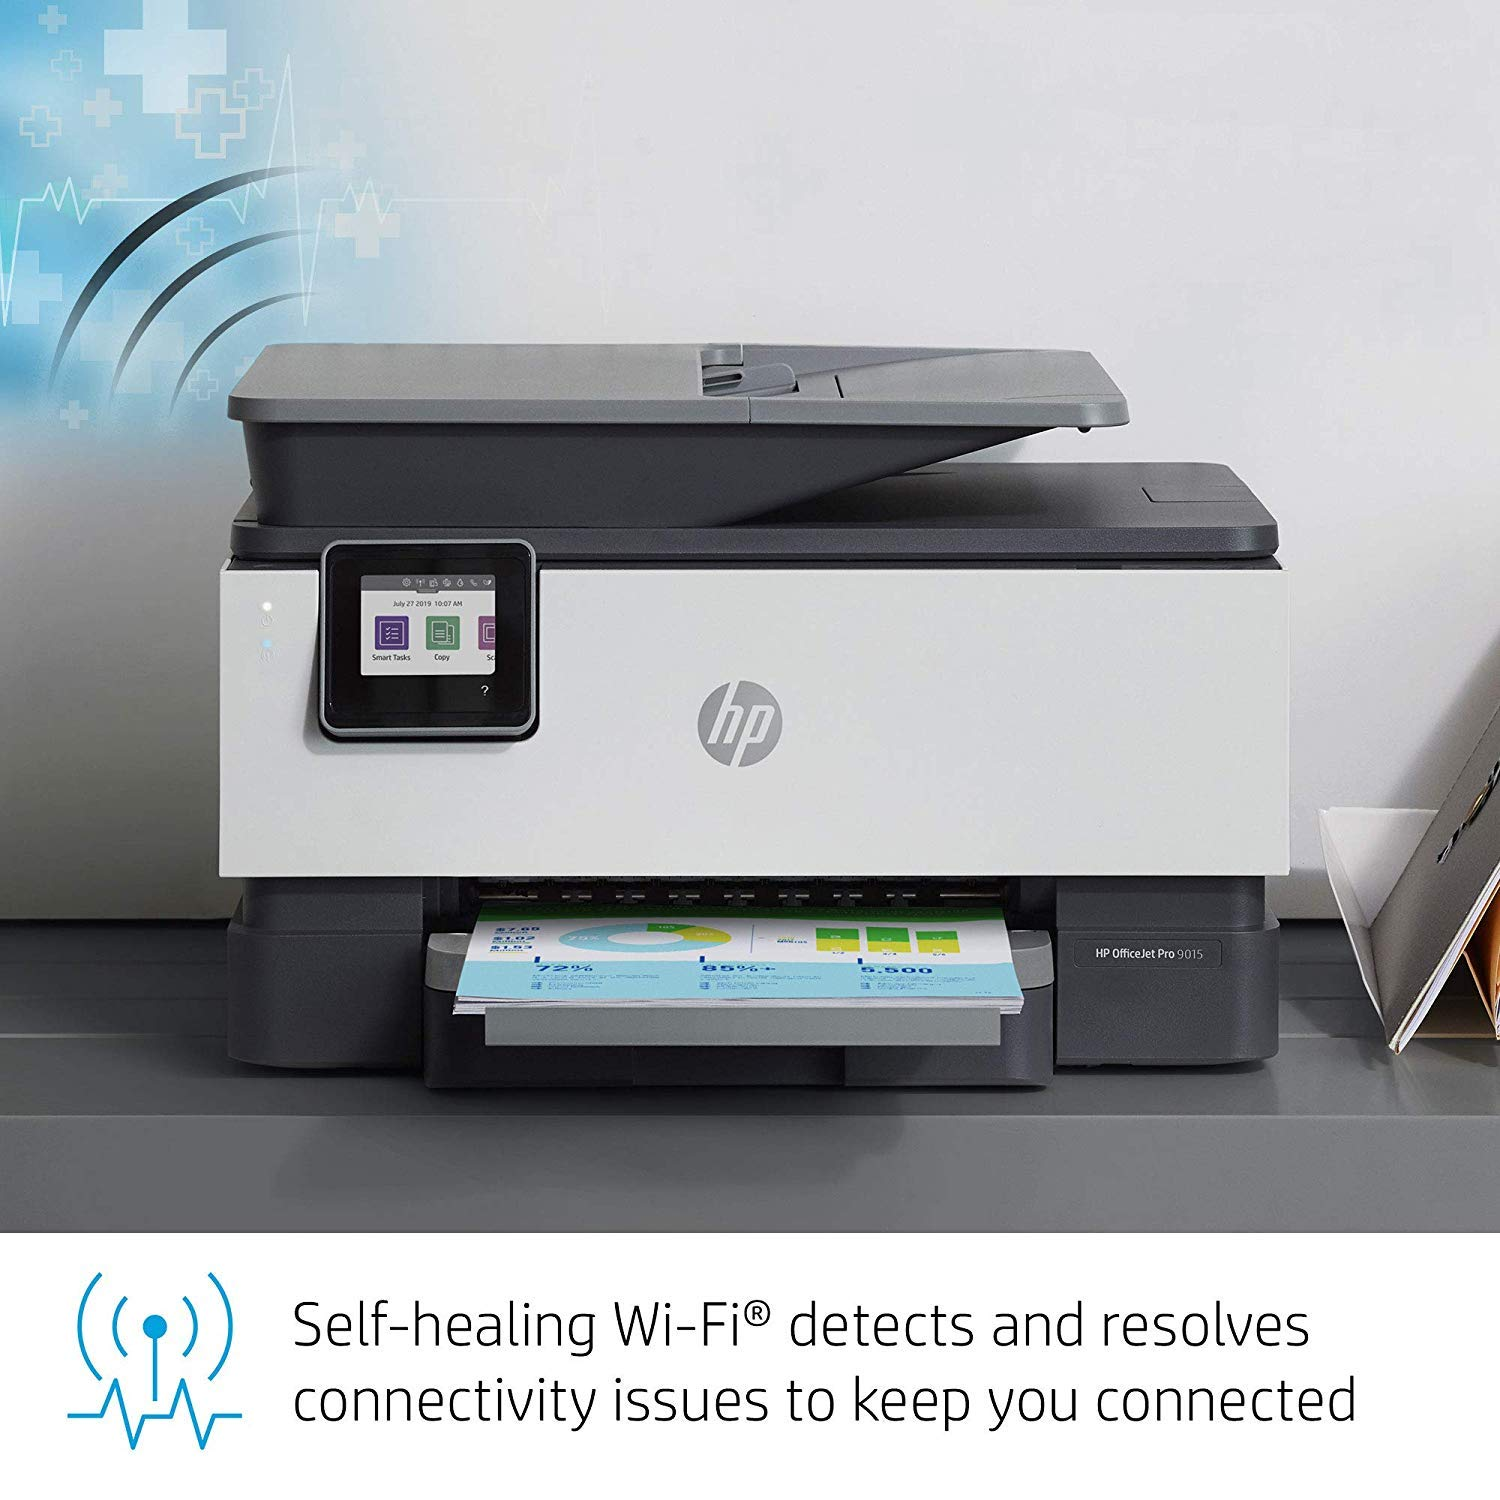 HP OfficeJet Pro 9015 All-in-One Wireless Printer with Smart Tasks for Smart Office Productivity /& Never Run Out of Ink with HP Instant Ink 1KR42A